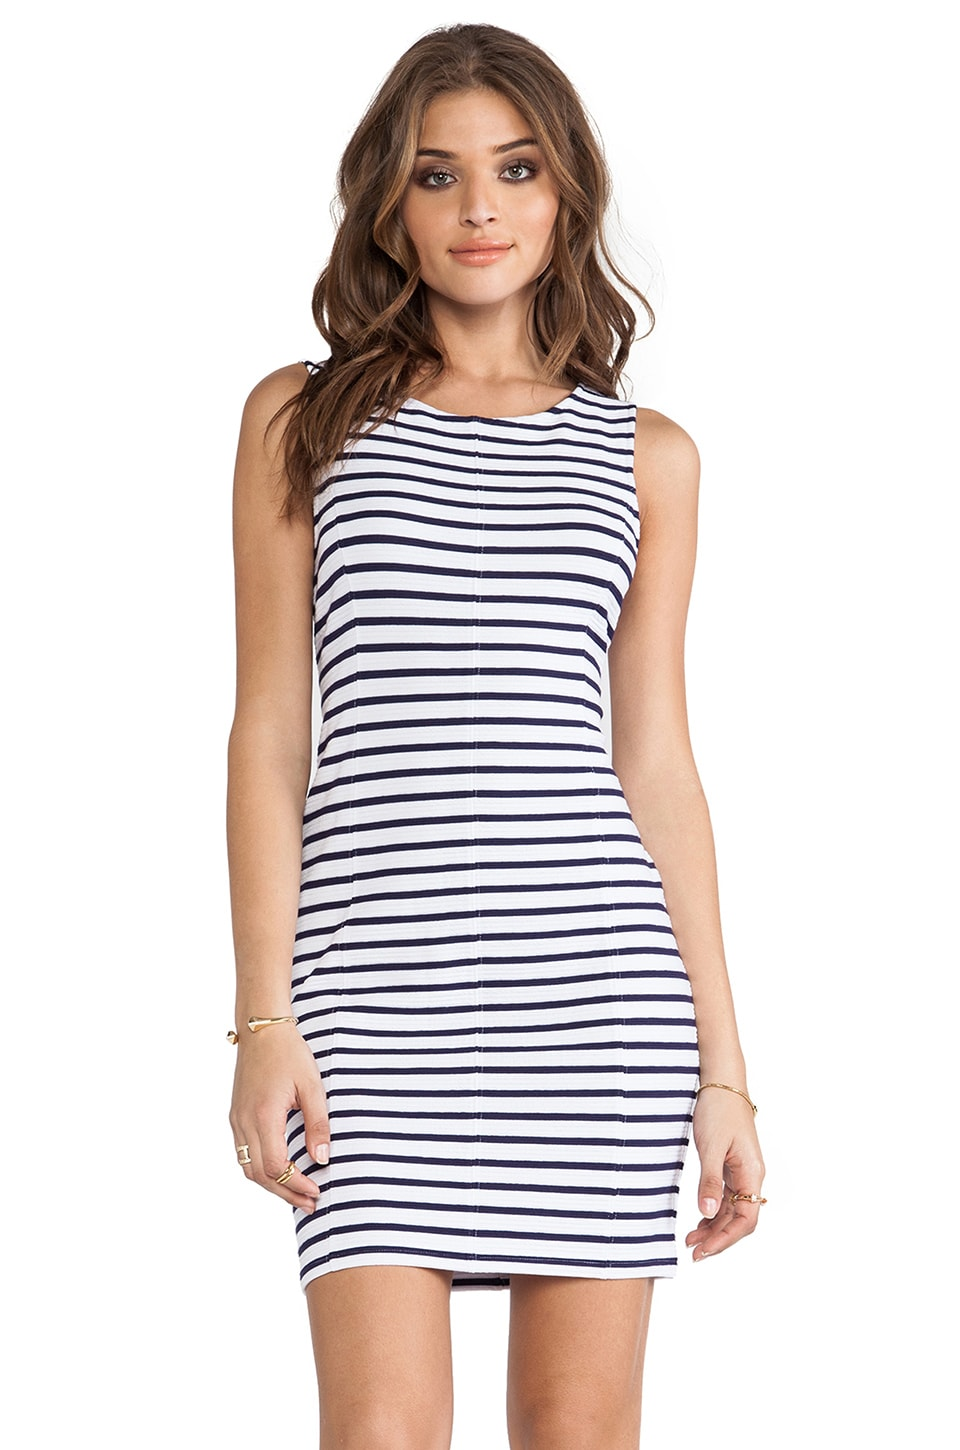 Sanctuary Spring Stripe Bodycon Dress in Navy Stripe